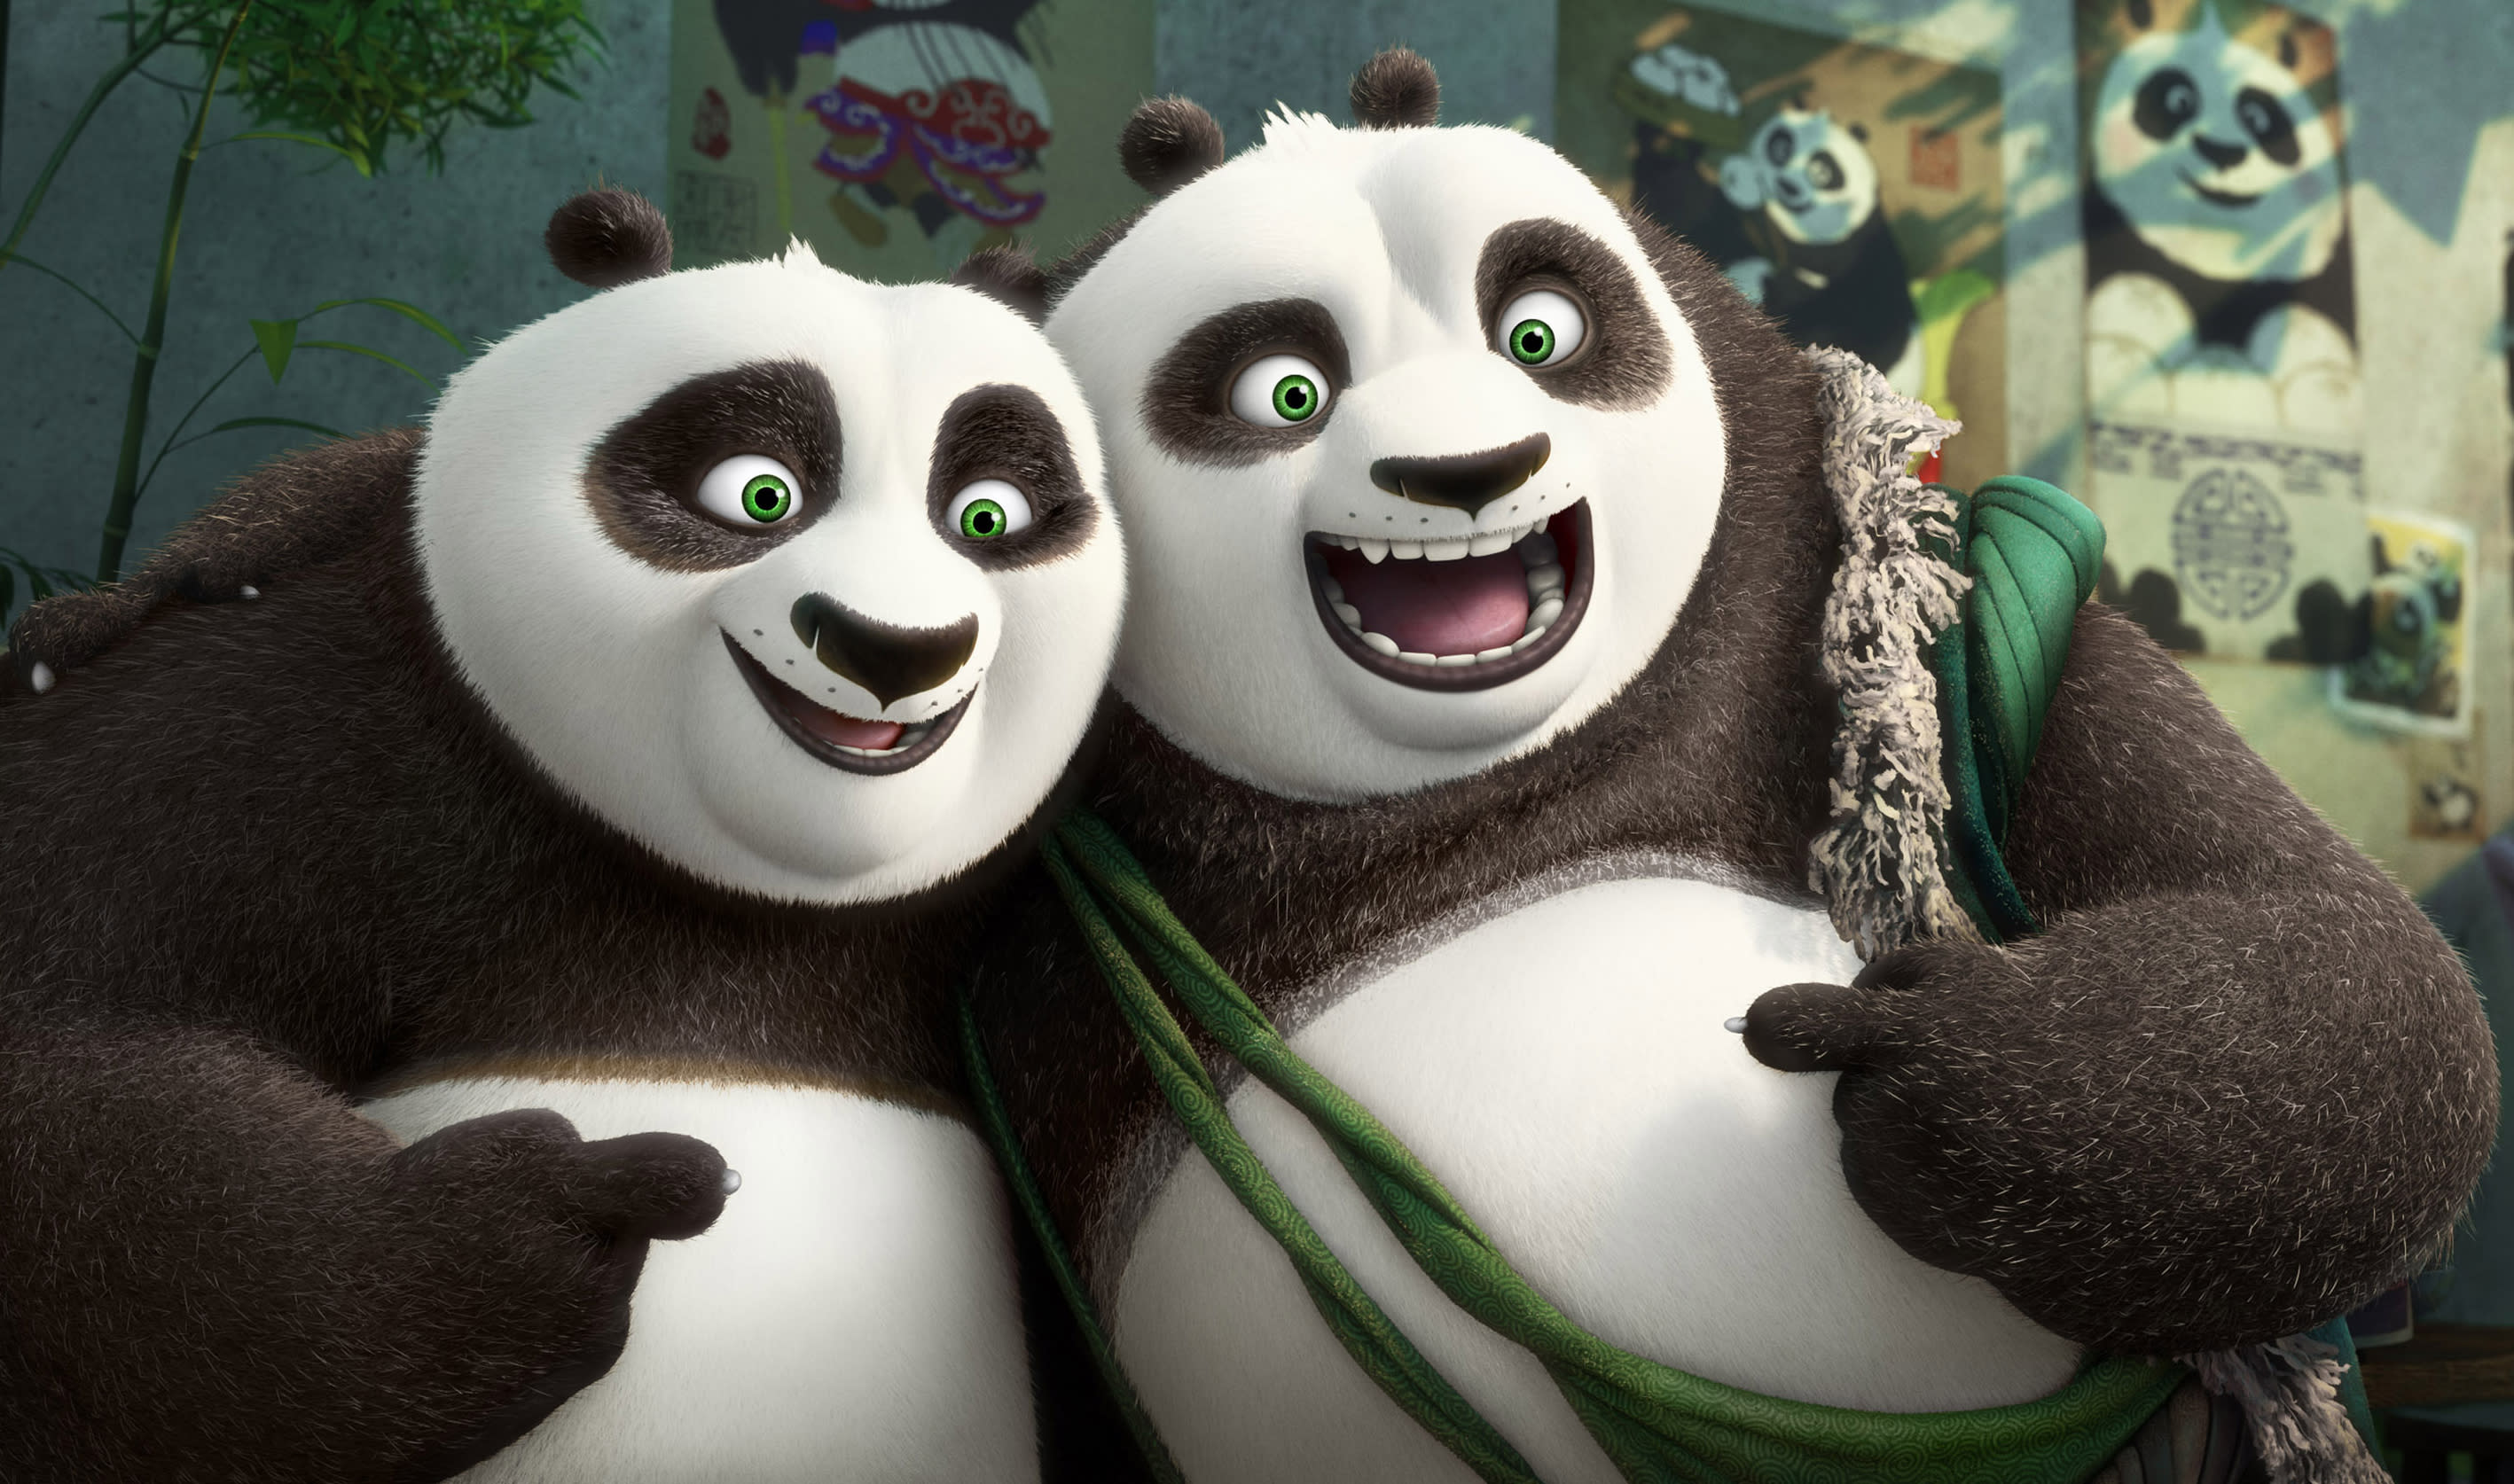 'Kung Fu Panda 3' tops Super Bowl weekend at box office